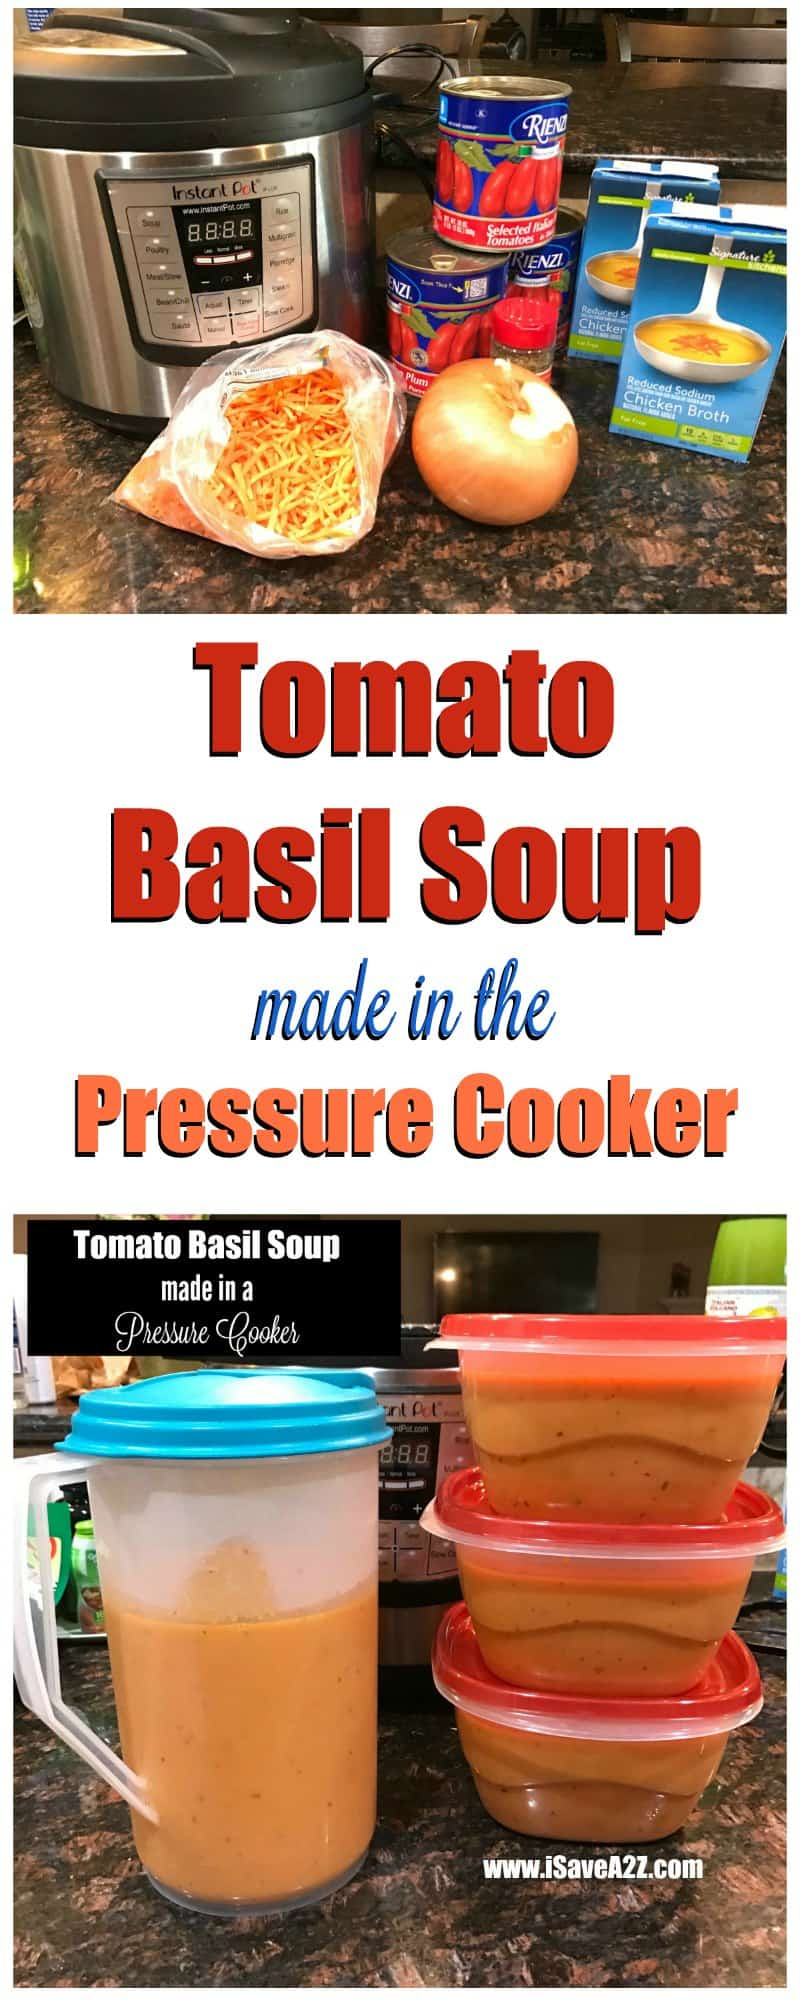 Nordstrom Tomato Basil Soup Made in a Pressure Cooker ...